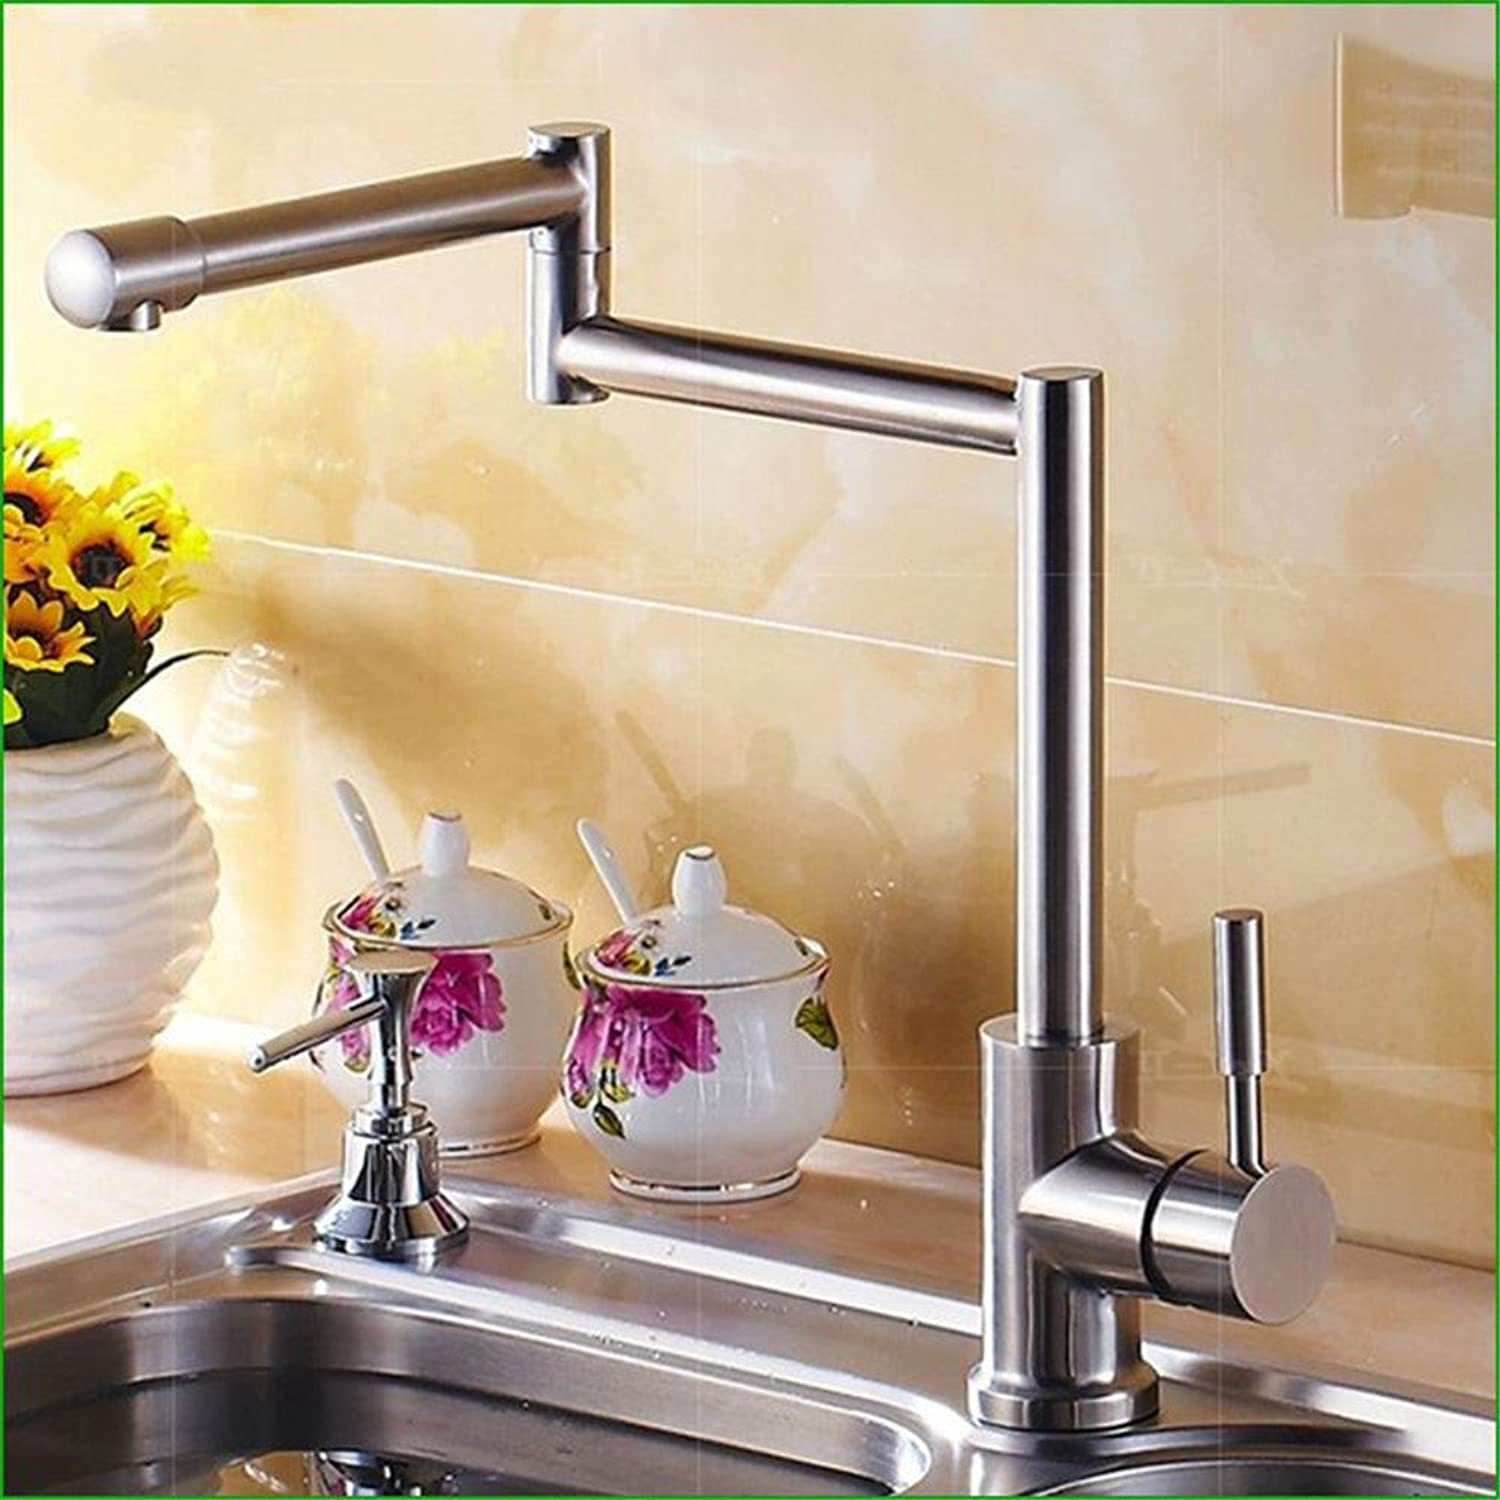 Bijjaladeva Antique Bathroom Sink Vessel Faucet Basin Mixer Tap 304 stainless steel water faucet kitchen faucet fold dish basin brushed Faucet